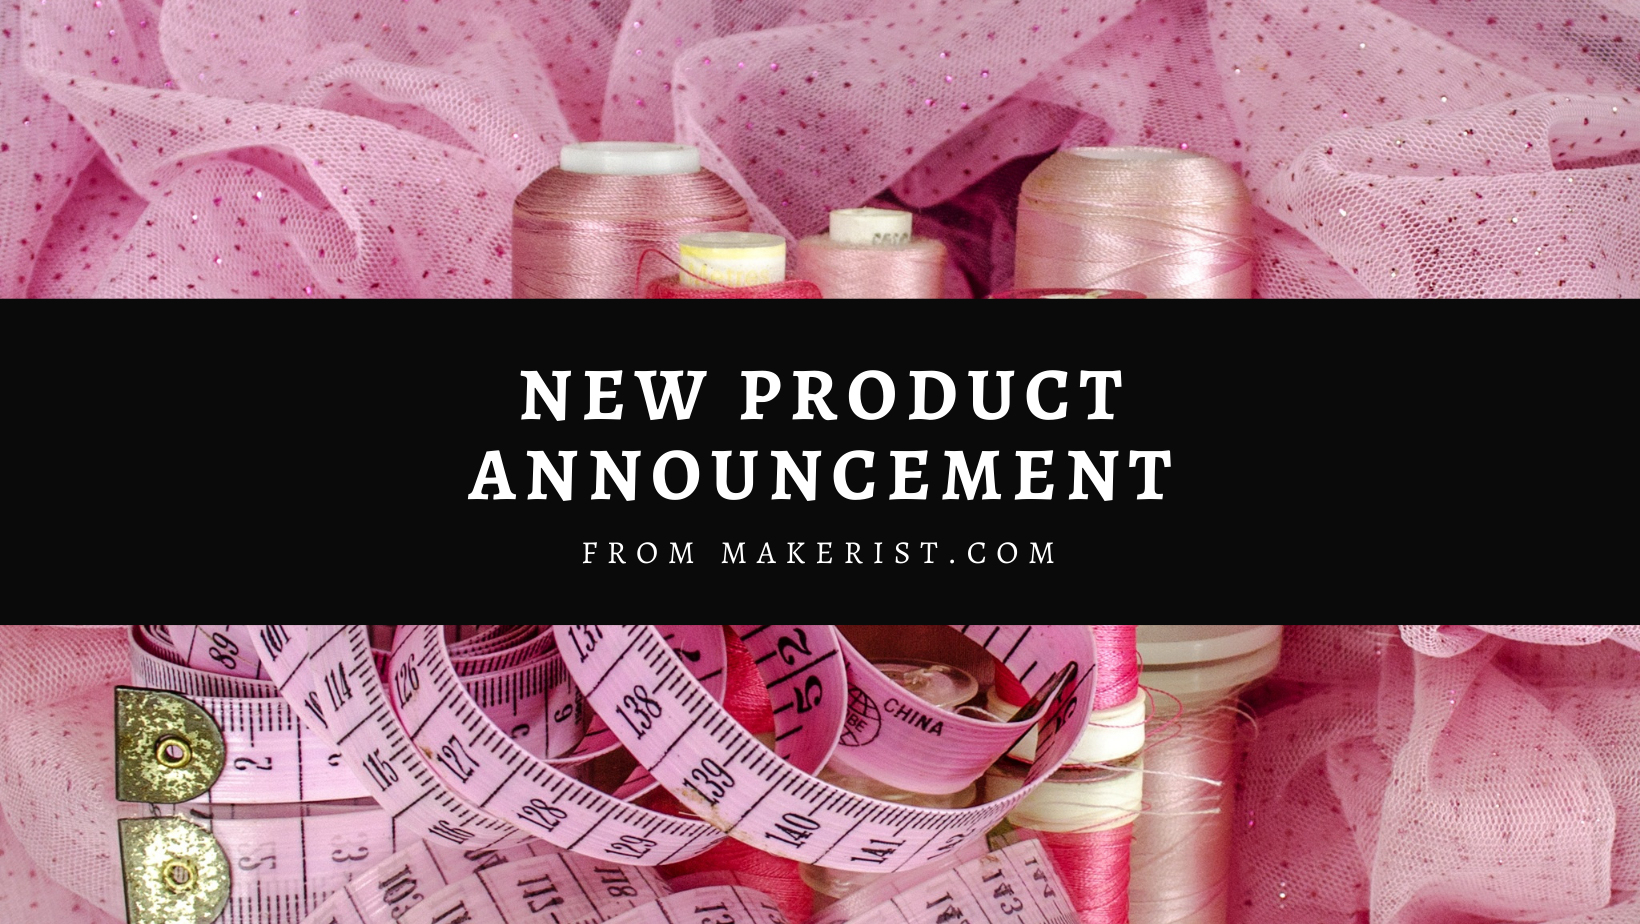 New Product Launch from Makerist.com